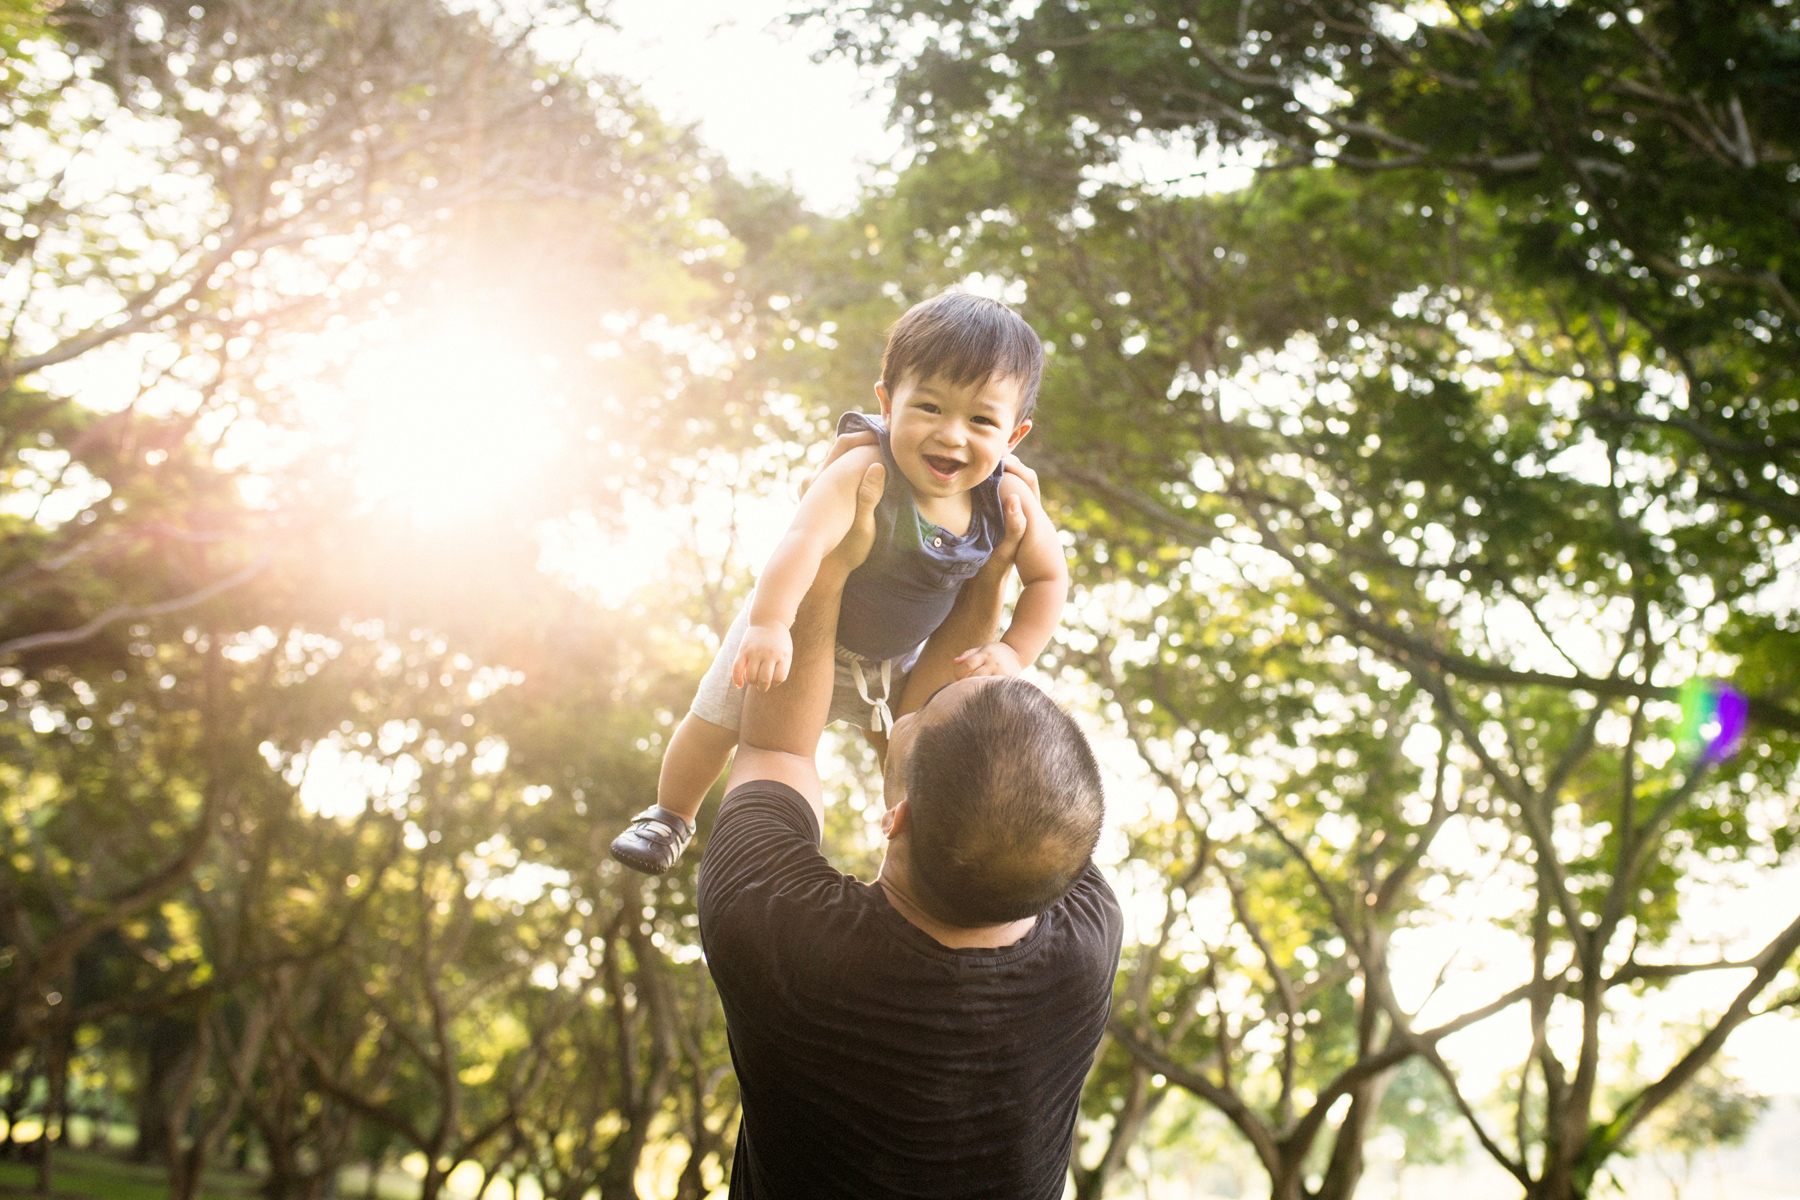 Childrens lifestyle photography outdoors Singapore